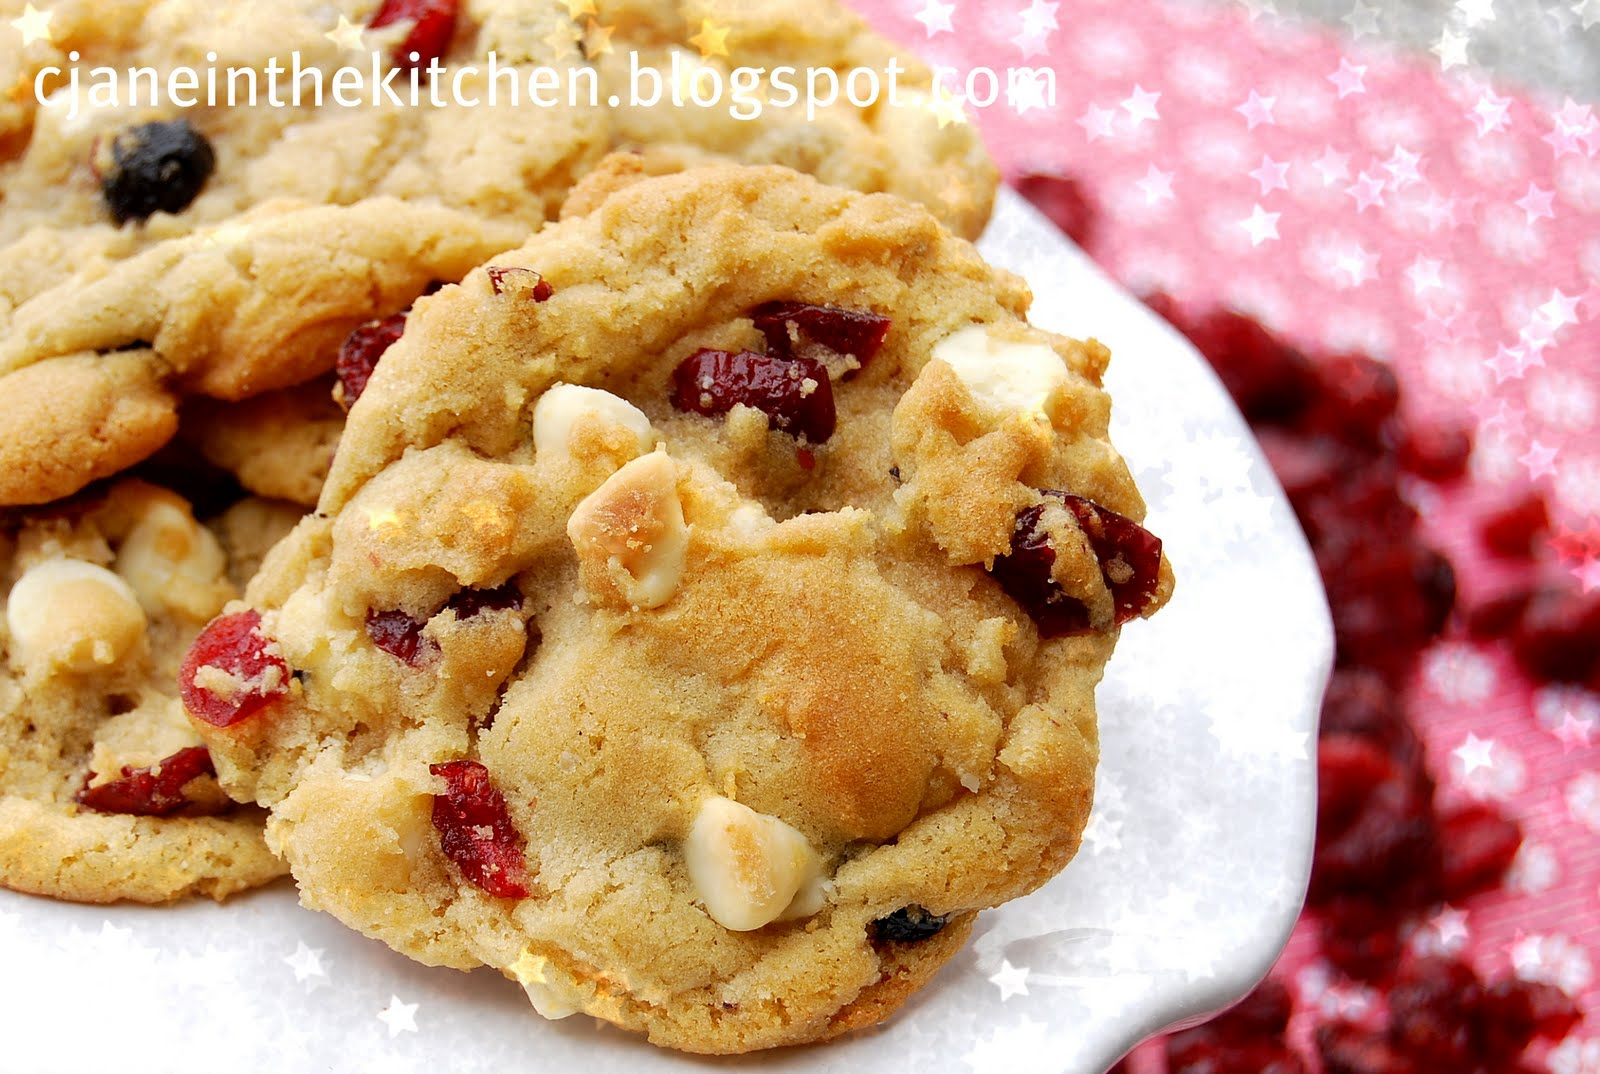 see jane in the kitchen: red, white, and blue cookies